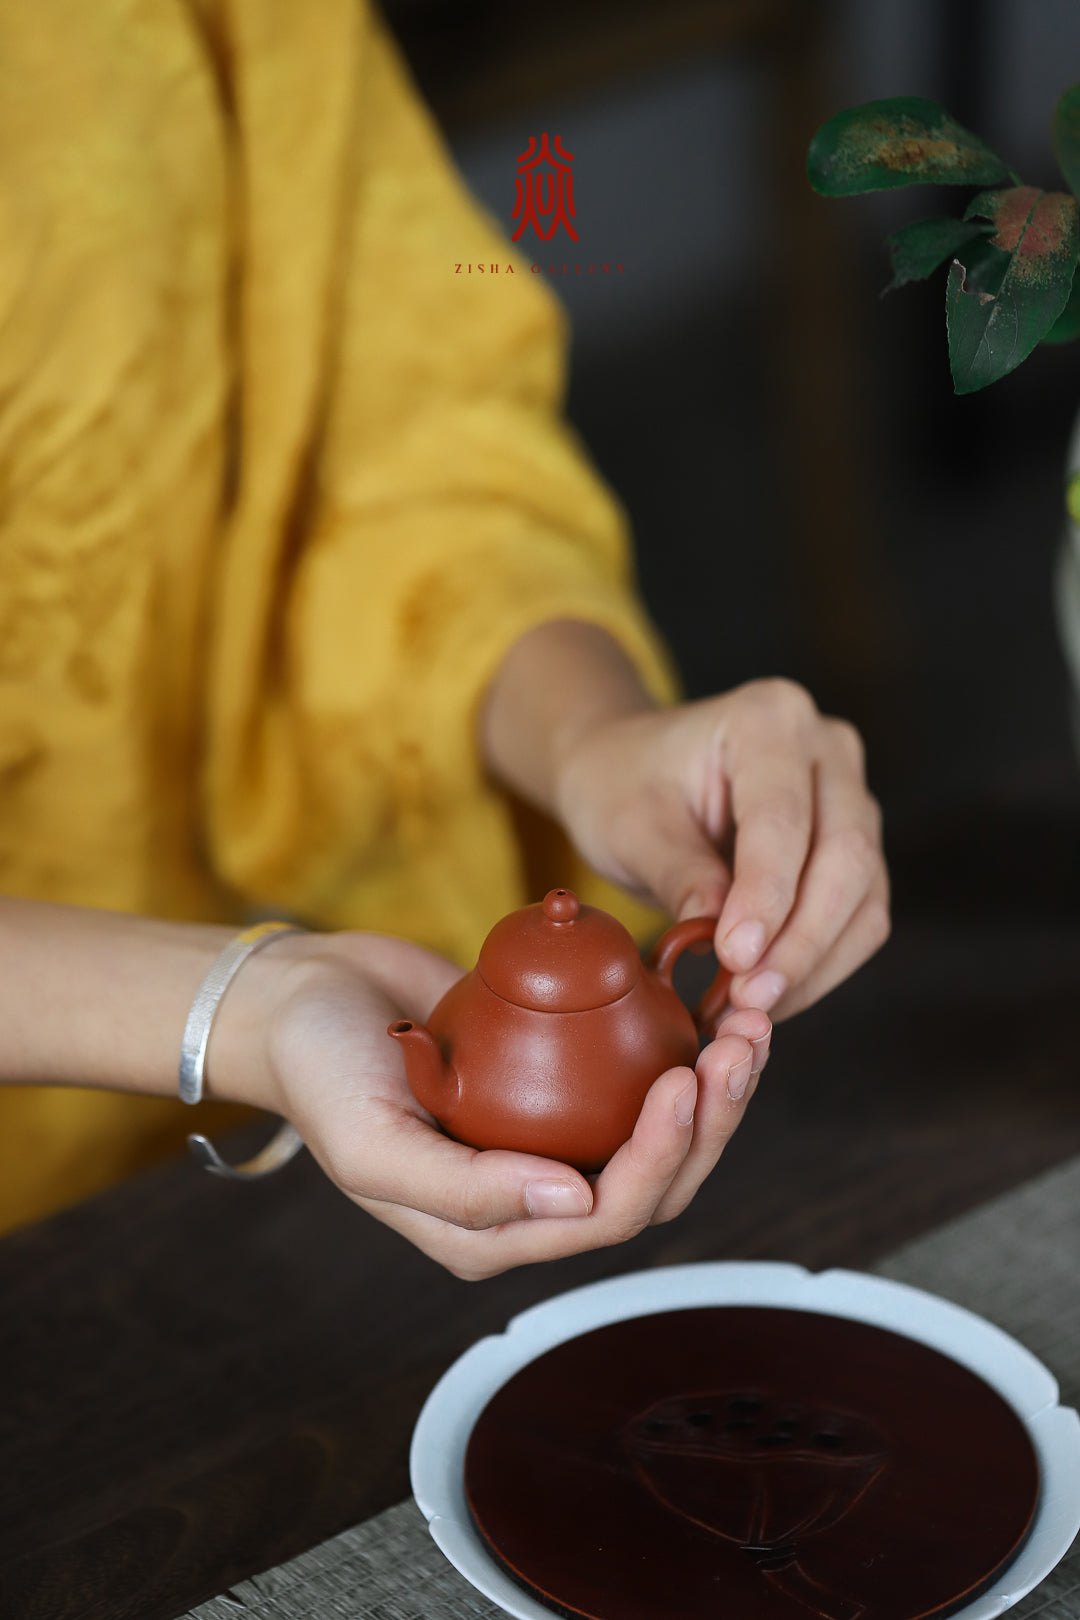 思亭 Si Ting 80ML 赵庄朱泥 Zhao Zhuang Zhuni 王建芳 Wang Jian Fang - The Phans Yixing Zisha Teapot